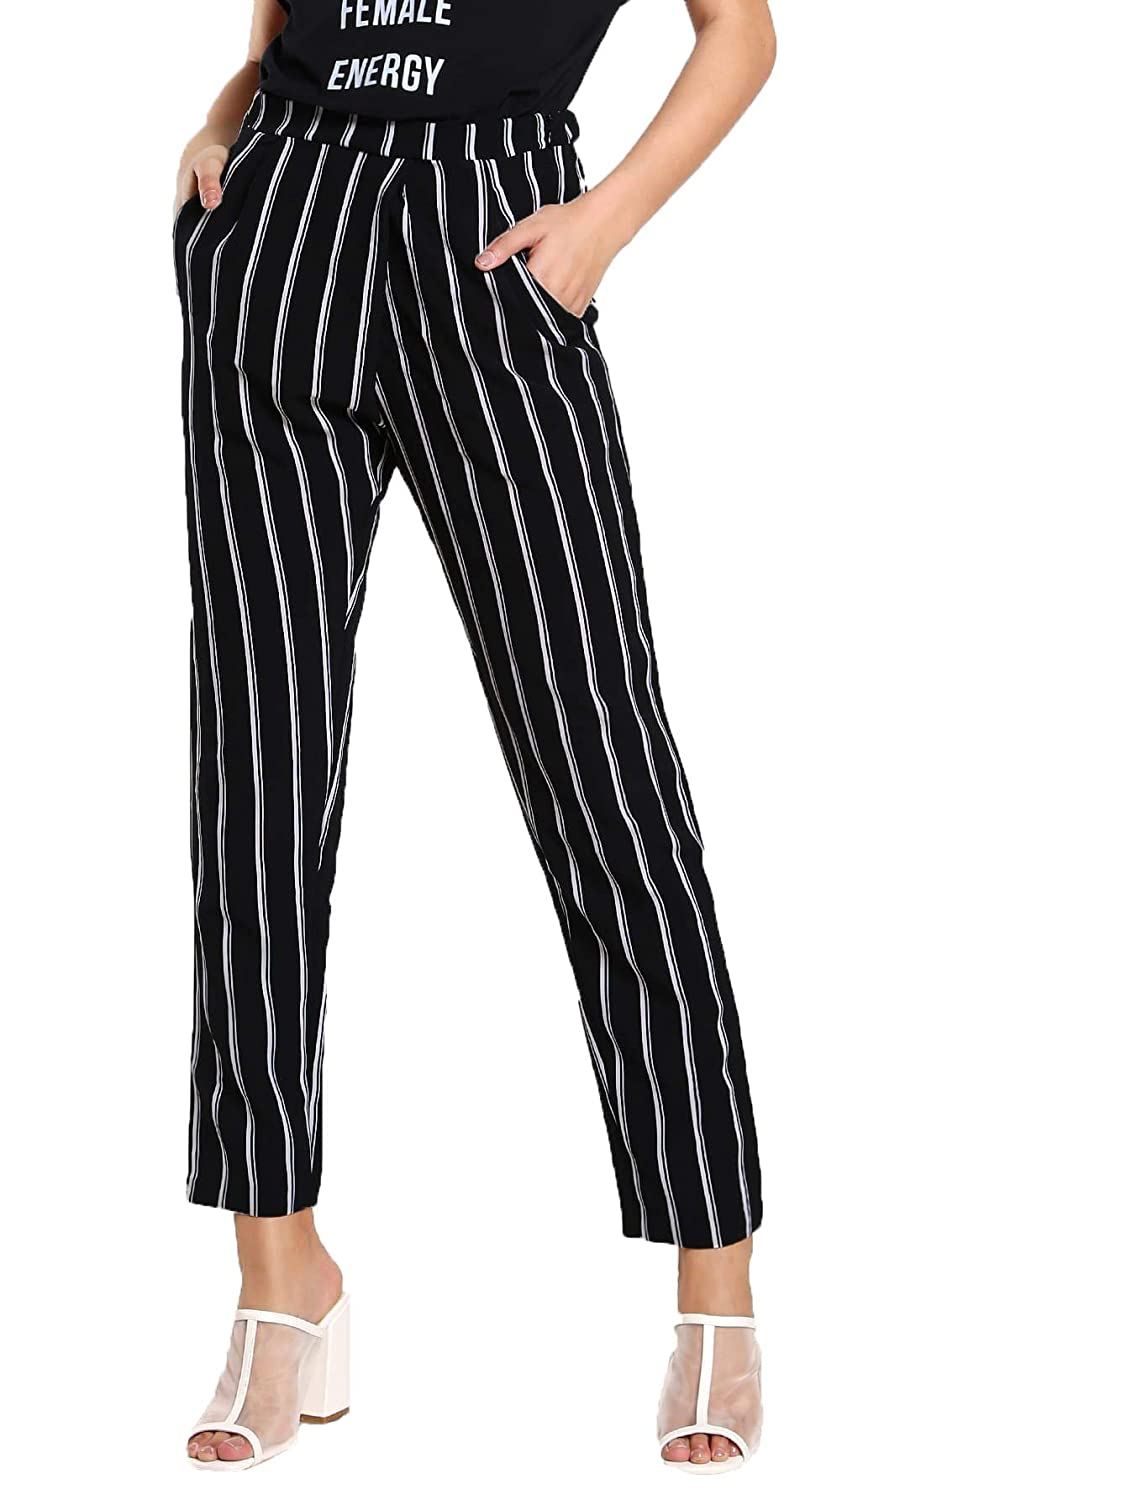 3 black White SweatyRocks Women's Elastic Belted High Waist Casual Loose Long Pants with Pocket